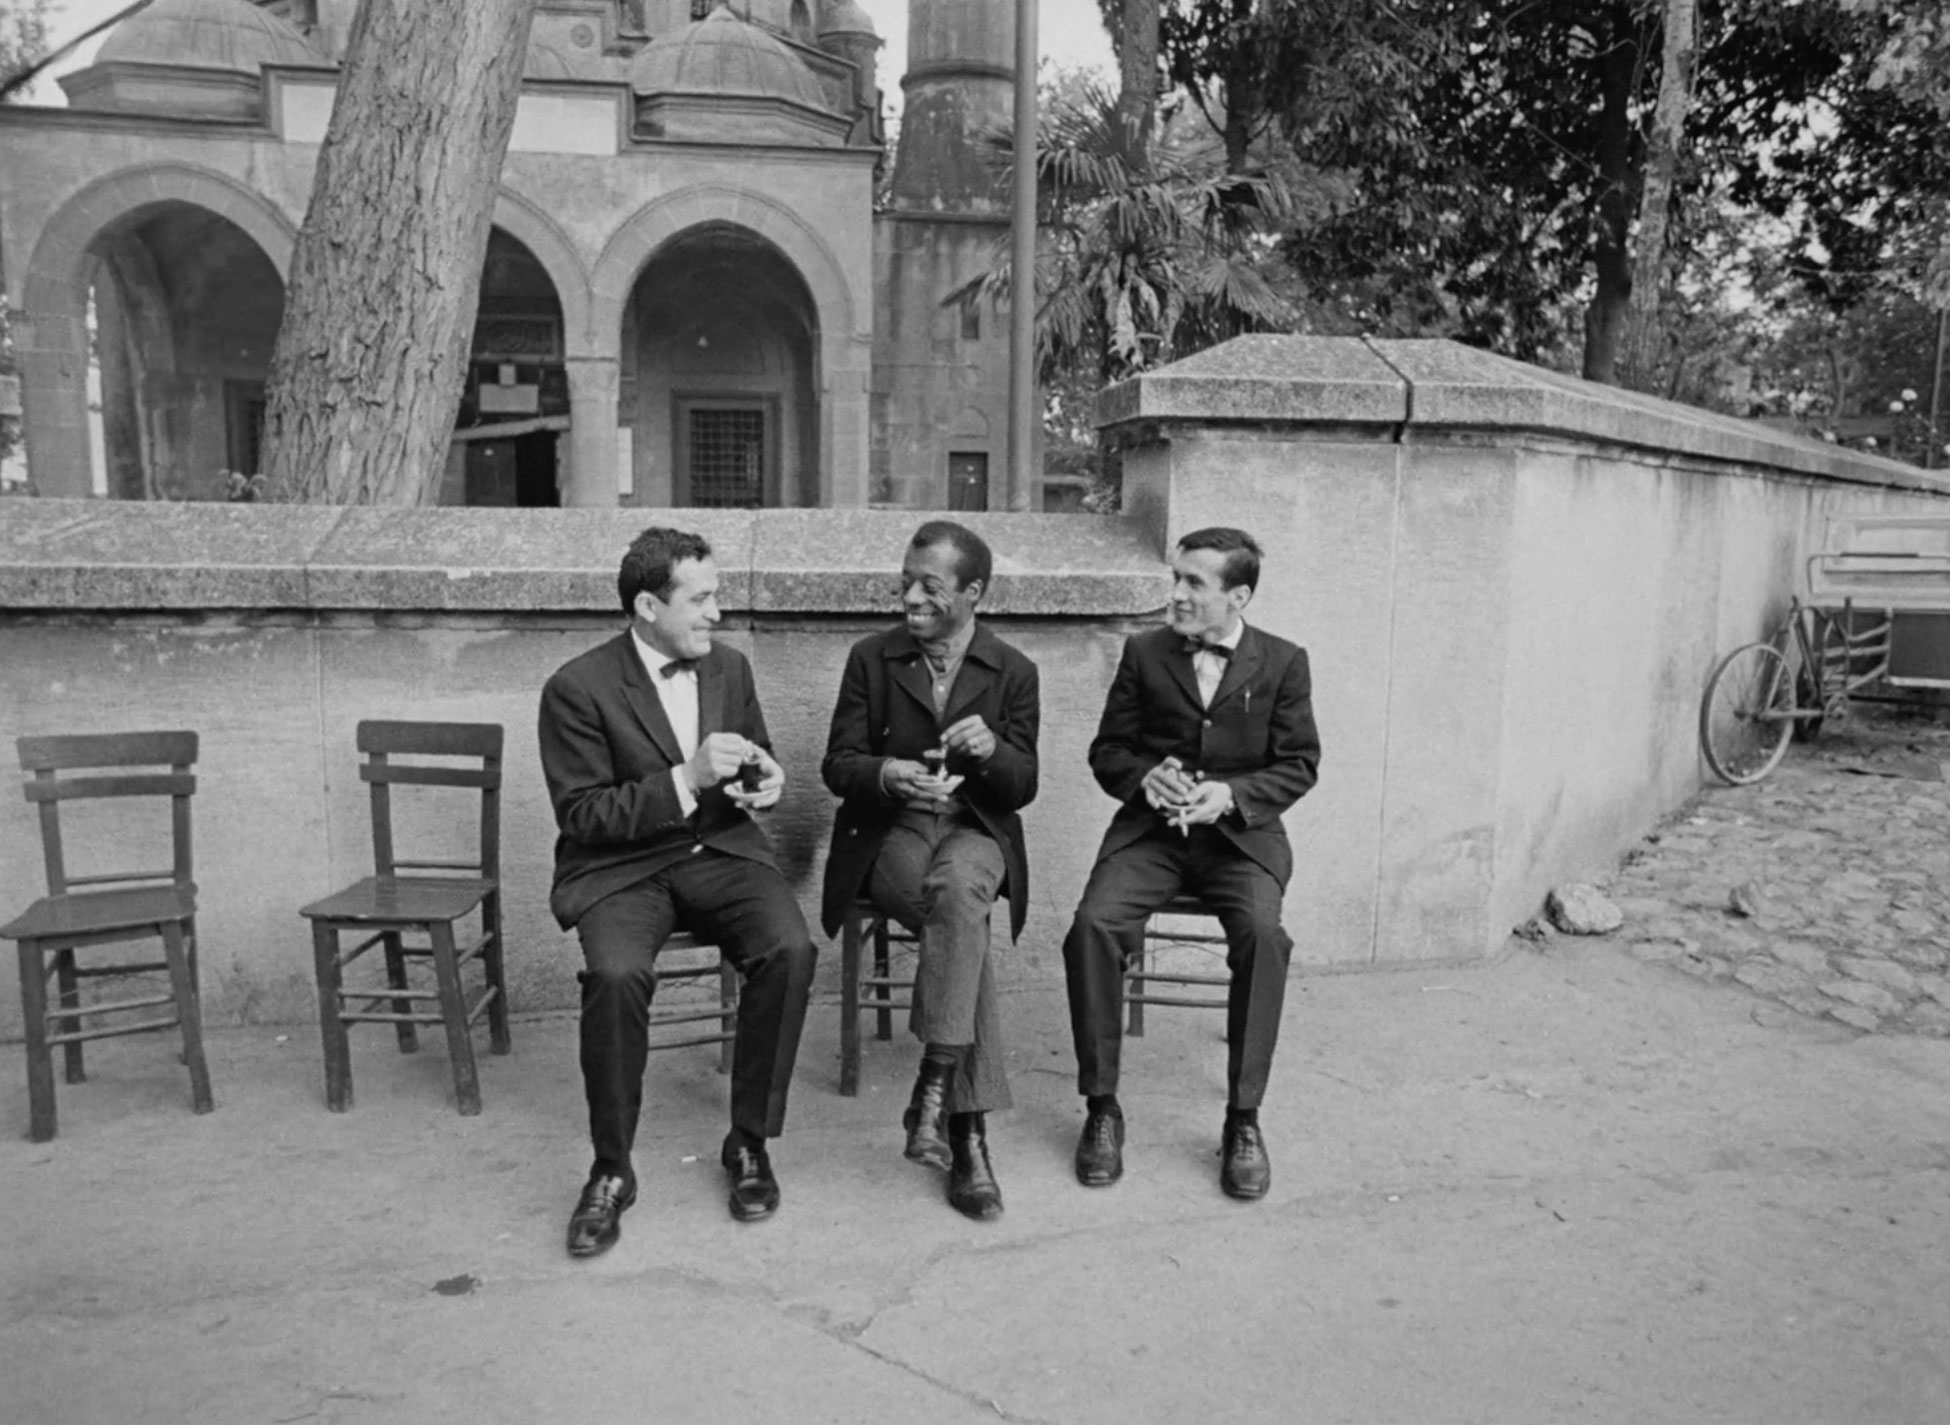 Three men sitting in front of building with arched doorways and domes